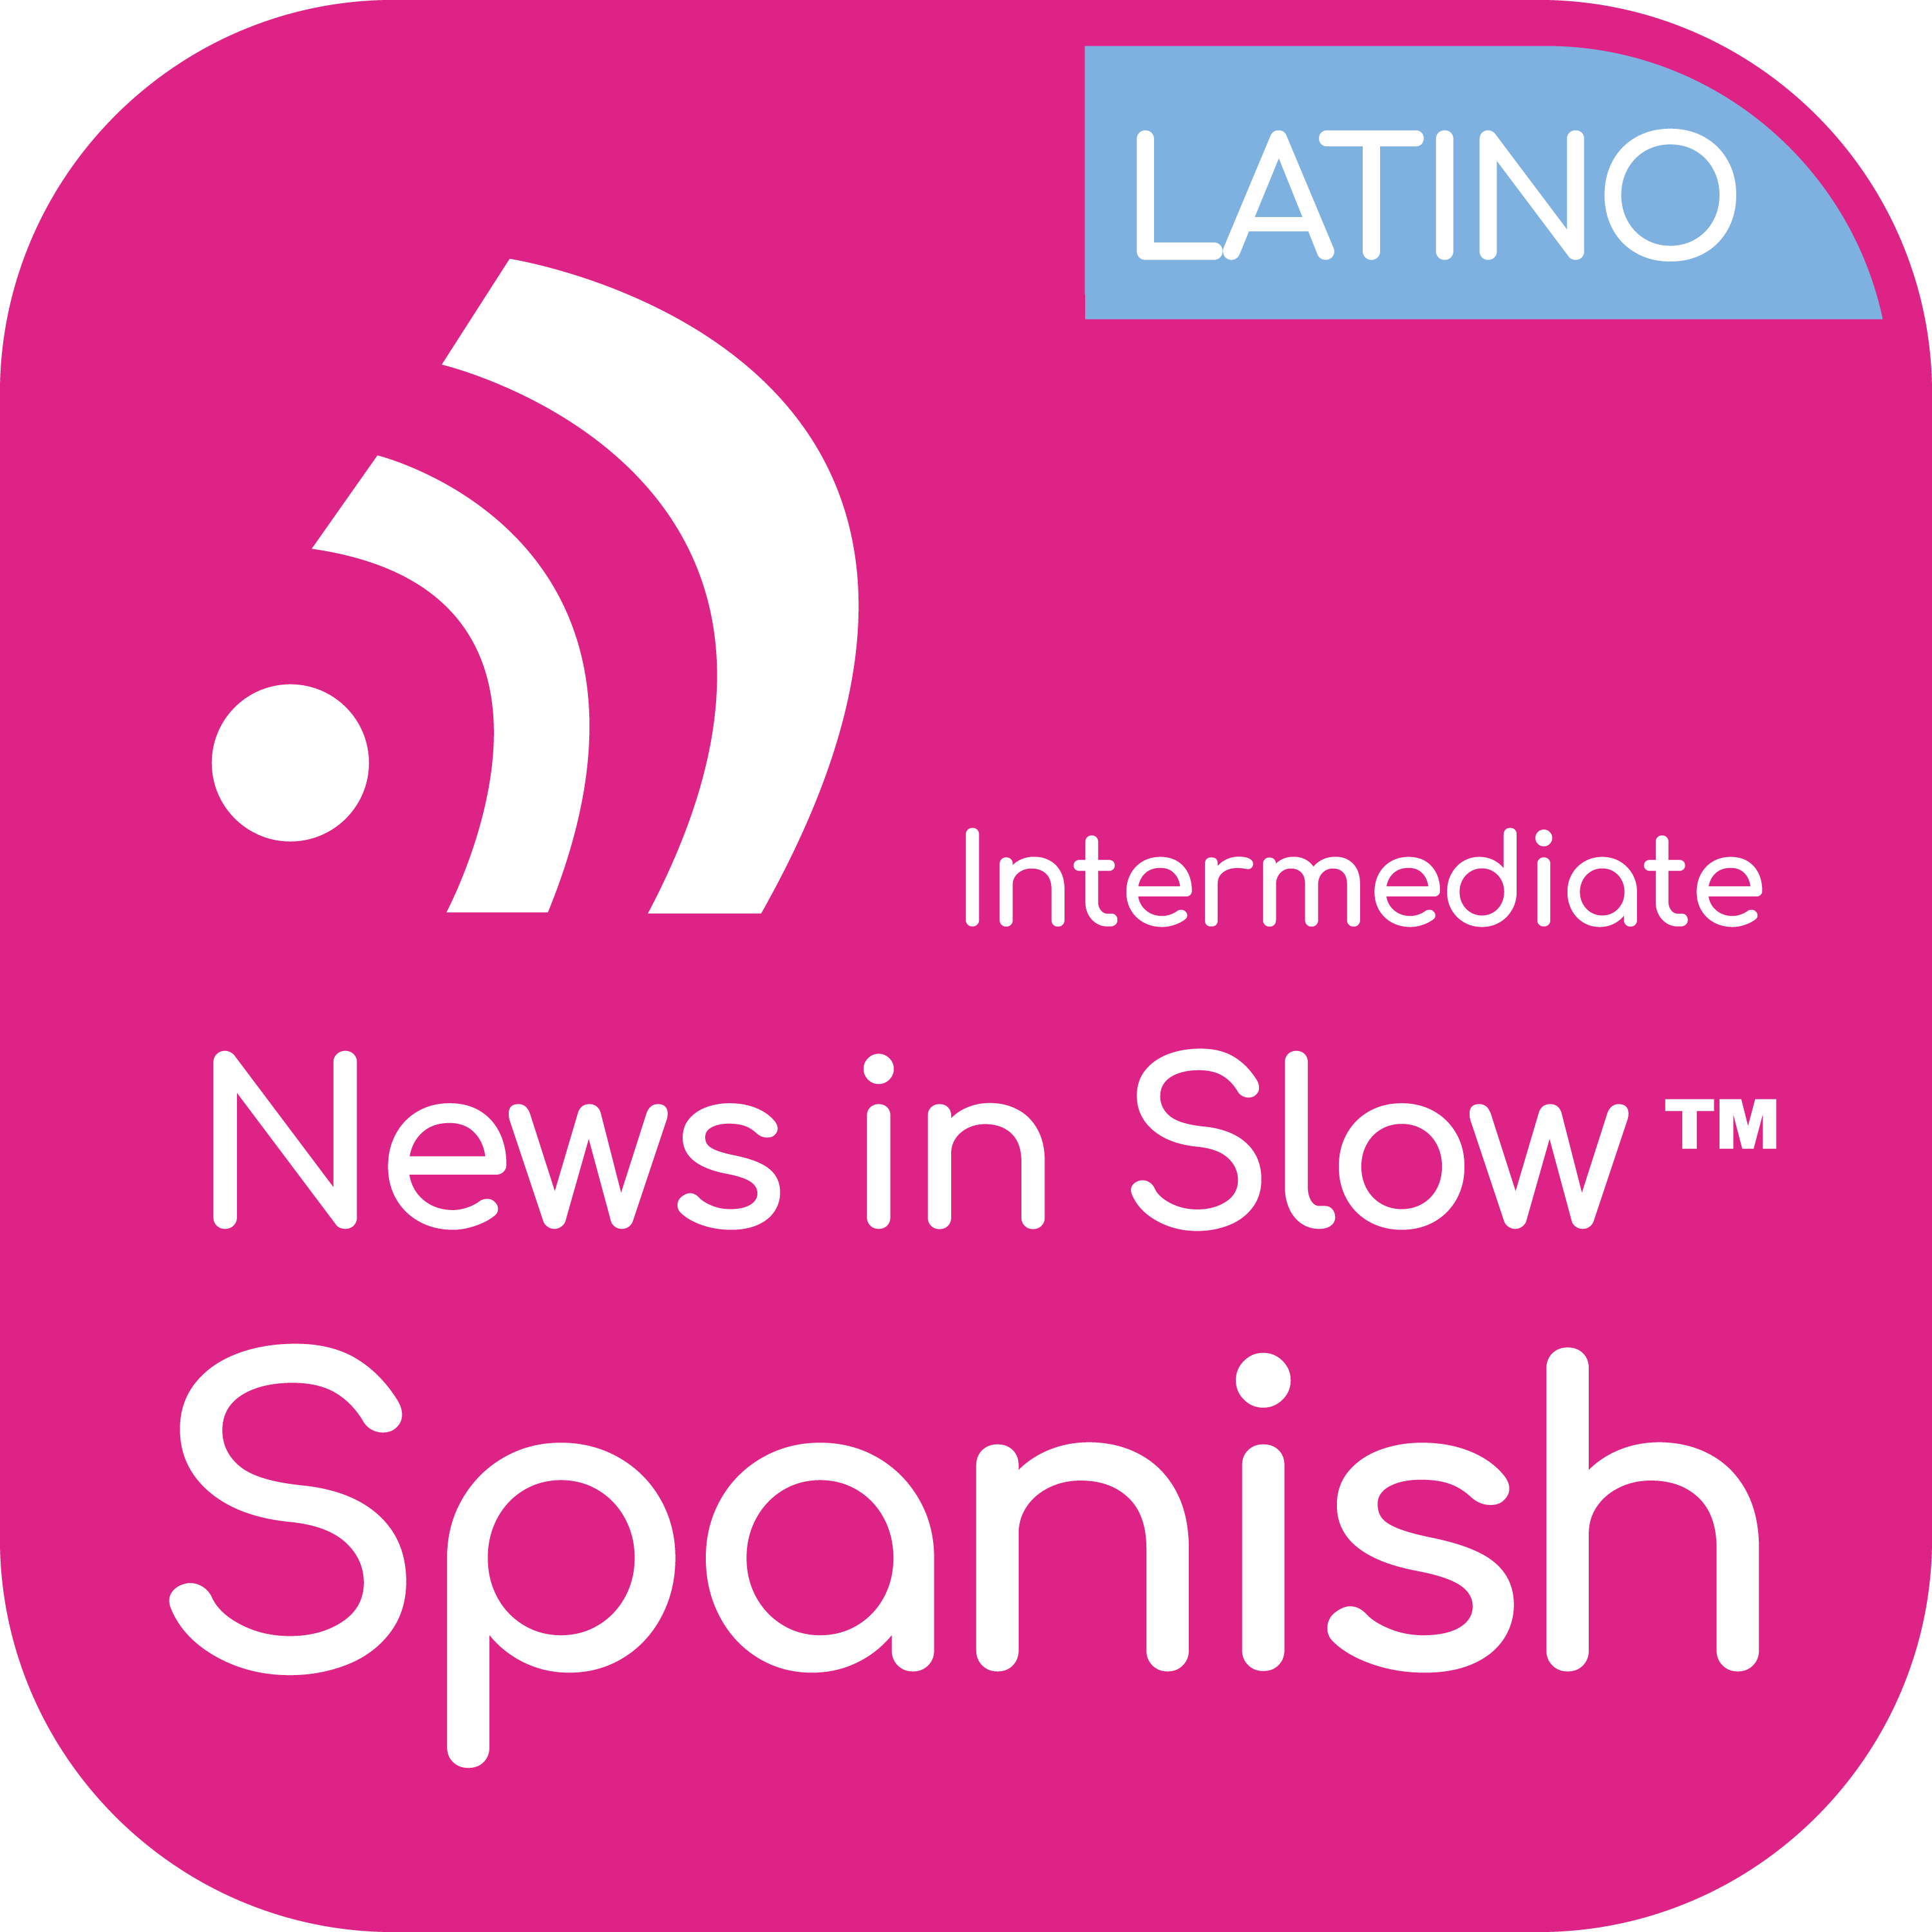 News In Slow Spanish Latino #383 - Best Spanish Program for Intermediate Learners